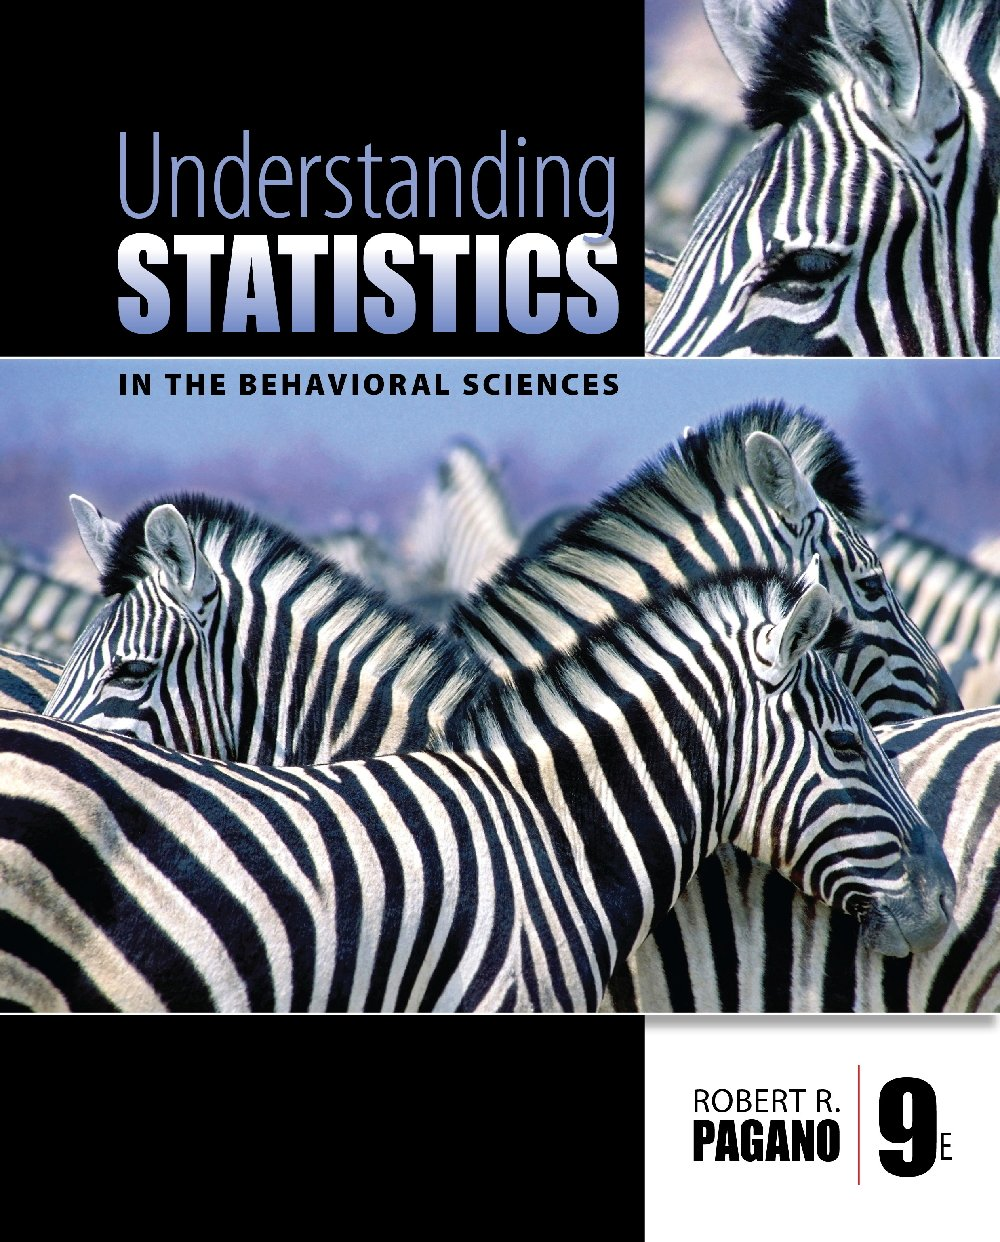 Study Guide for Pagano's Understanding Statistics in the Behavioral Sciences:  Amazon.co.uk: Robert R. Pagano: 9780495596561: Books